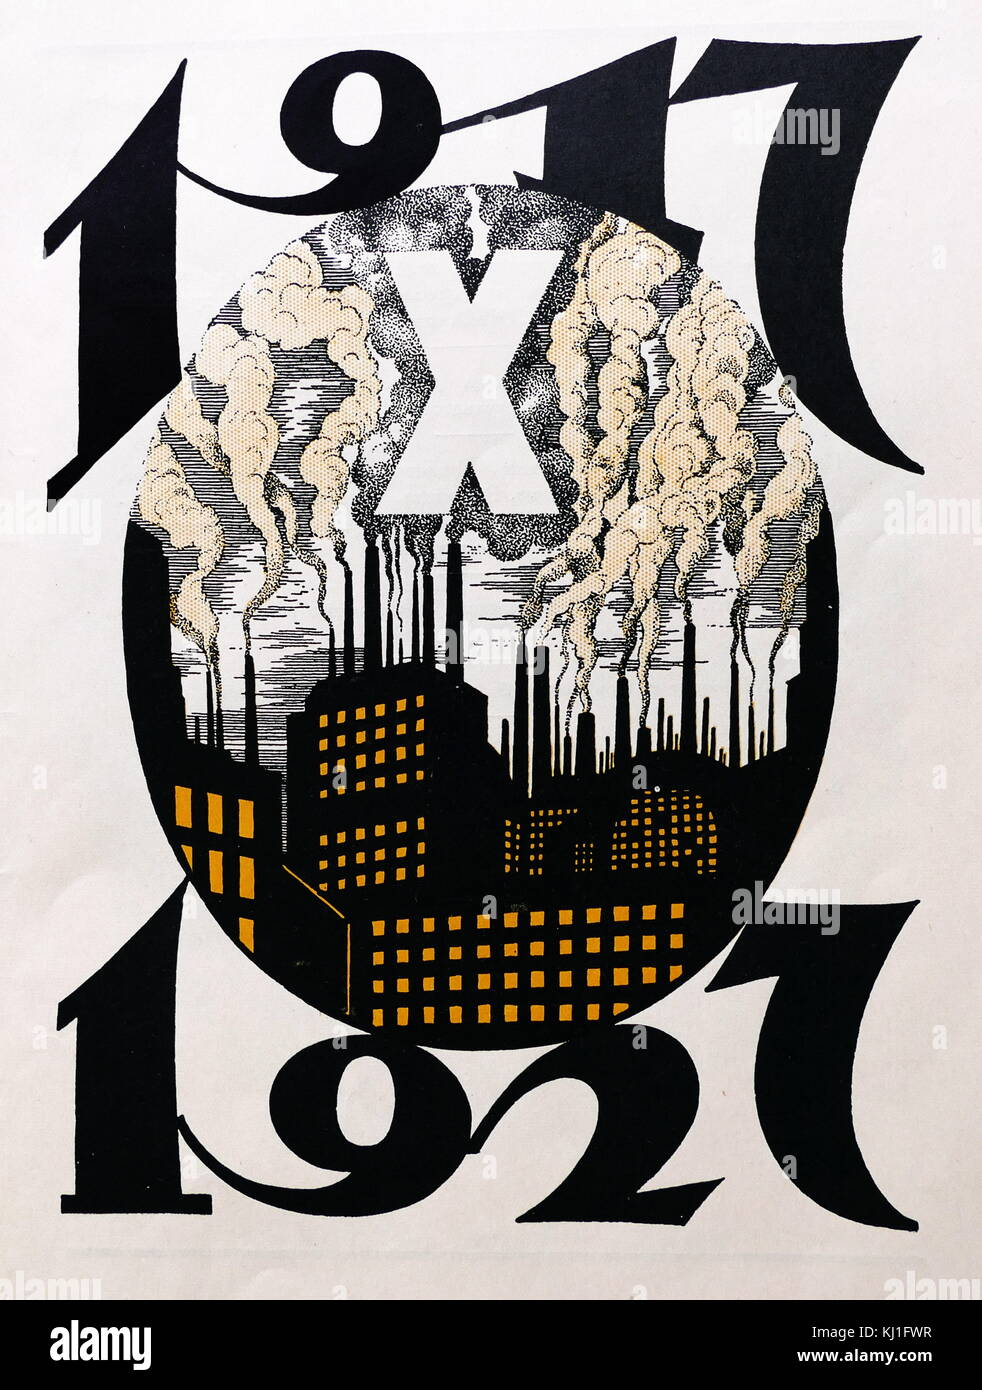 1927, 10th anniversary illustration, commemorating the 1917 Russian revolution. Shows a smoking factory complex - Stock Image